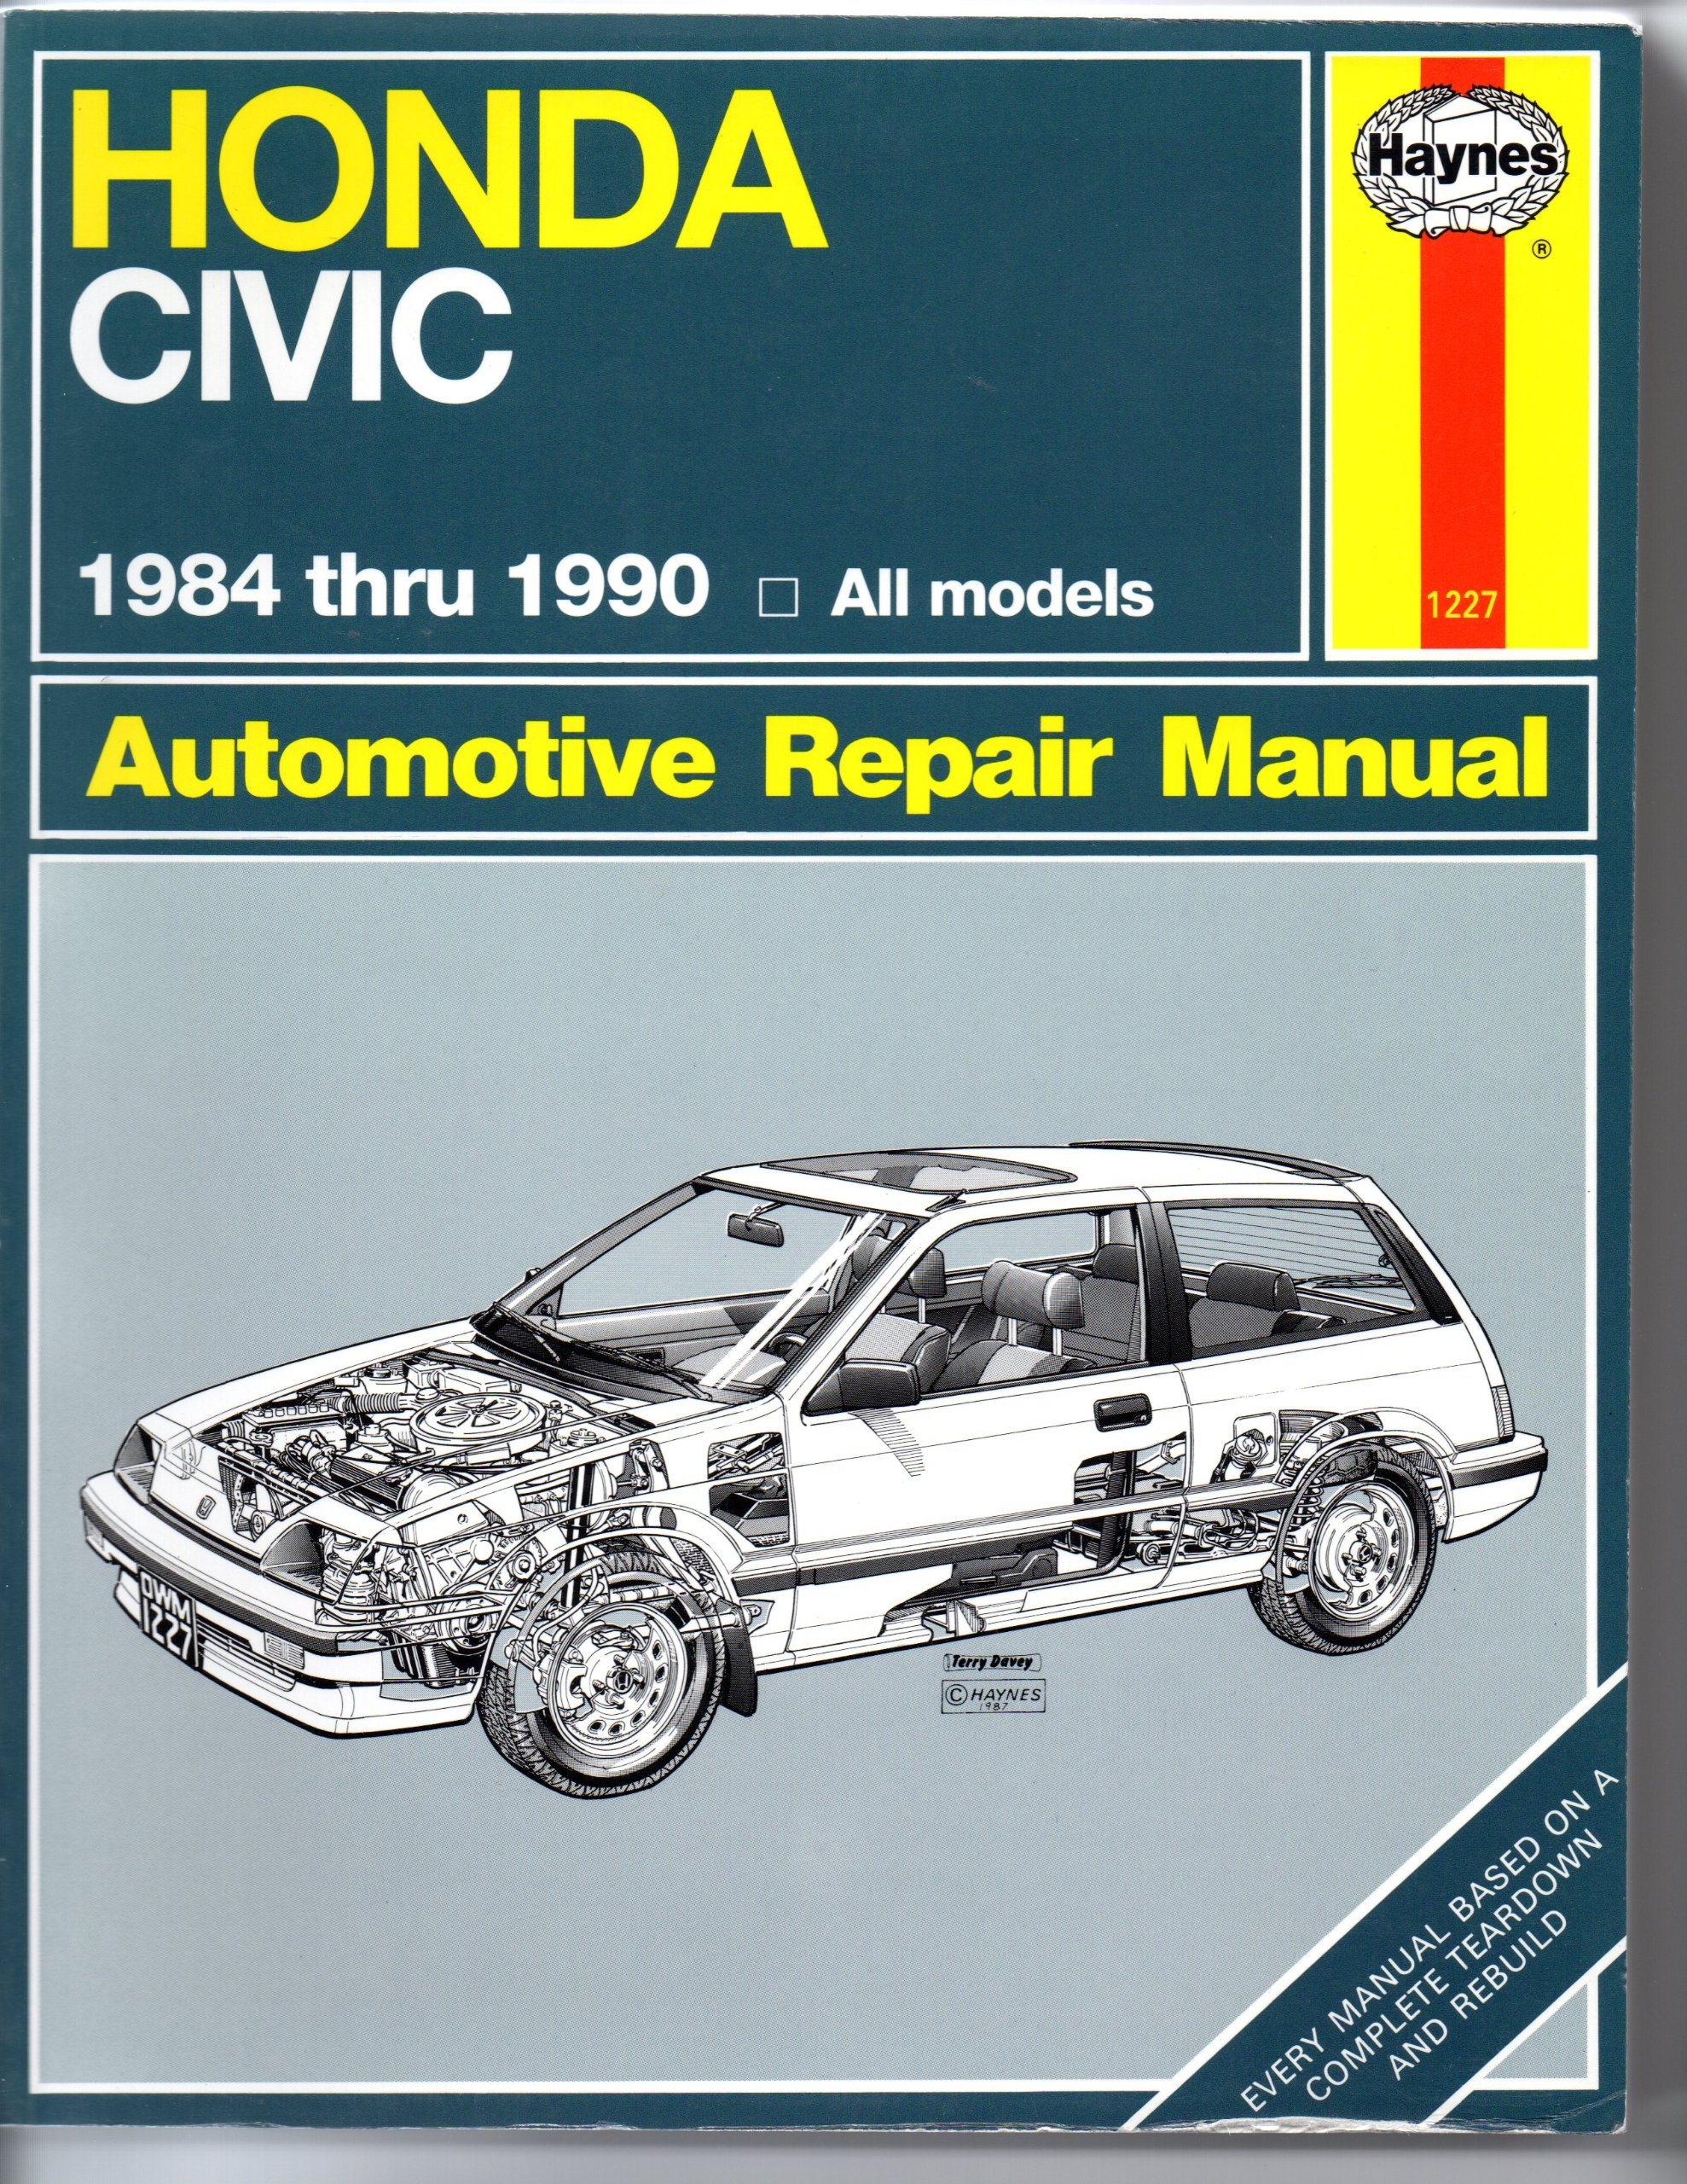 Honda Civic Automotive Repair Manual, 1984-1990: Mike Stubblefield, Robert  Maddox, John H. Haynes: 9781850107224: Amazon.com: Books